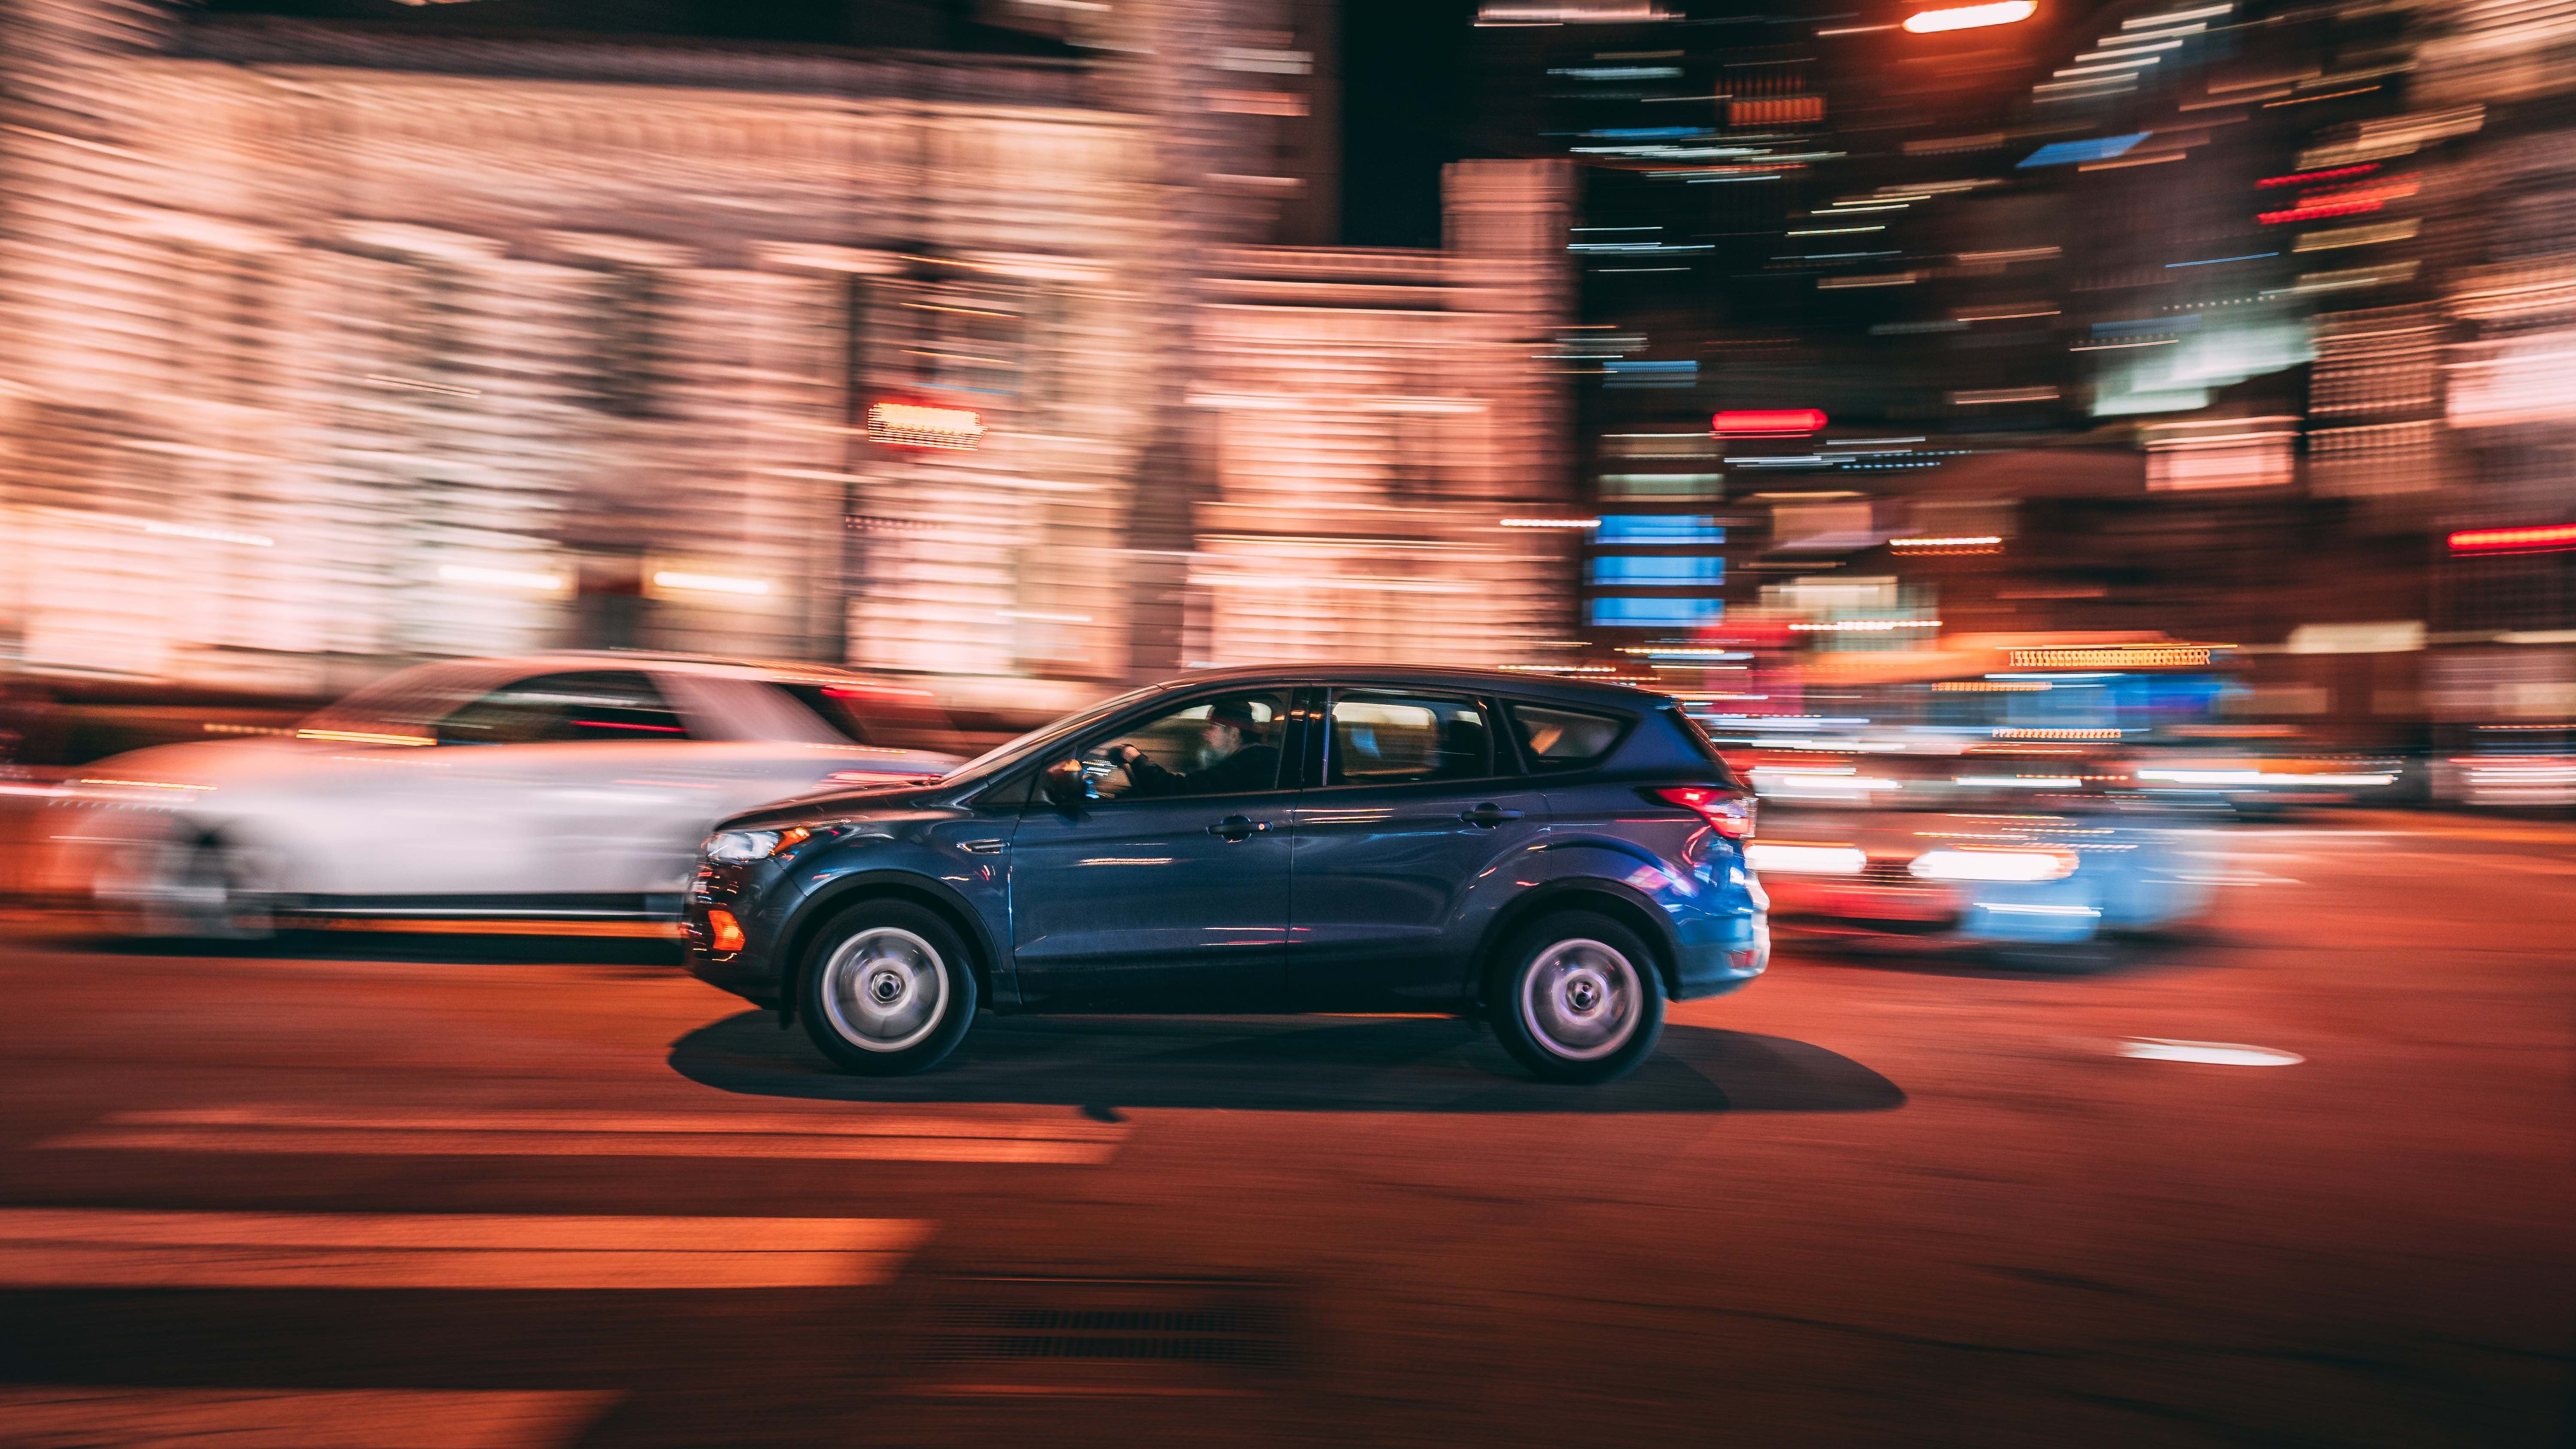 Why More Learners Must Practise Night Driving Before Taking the Test